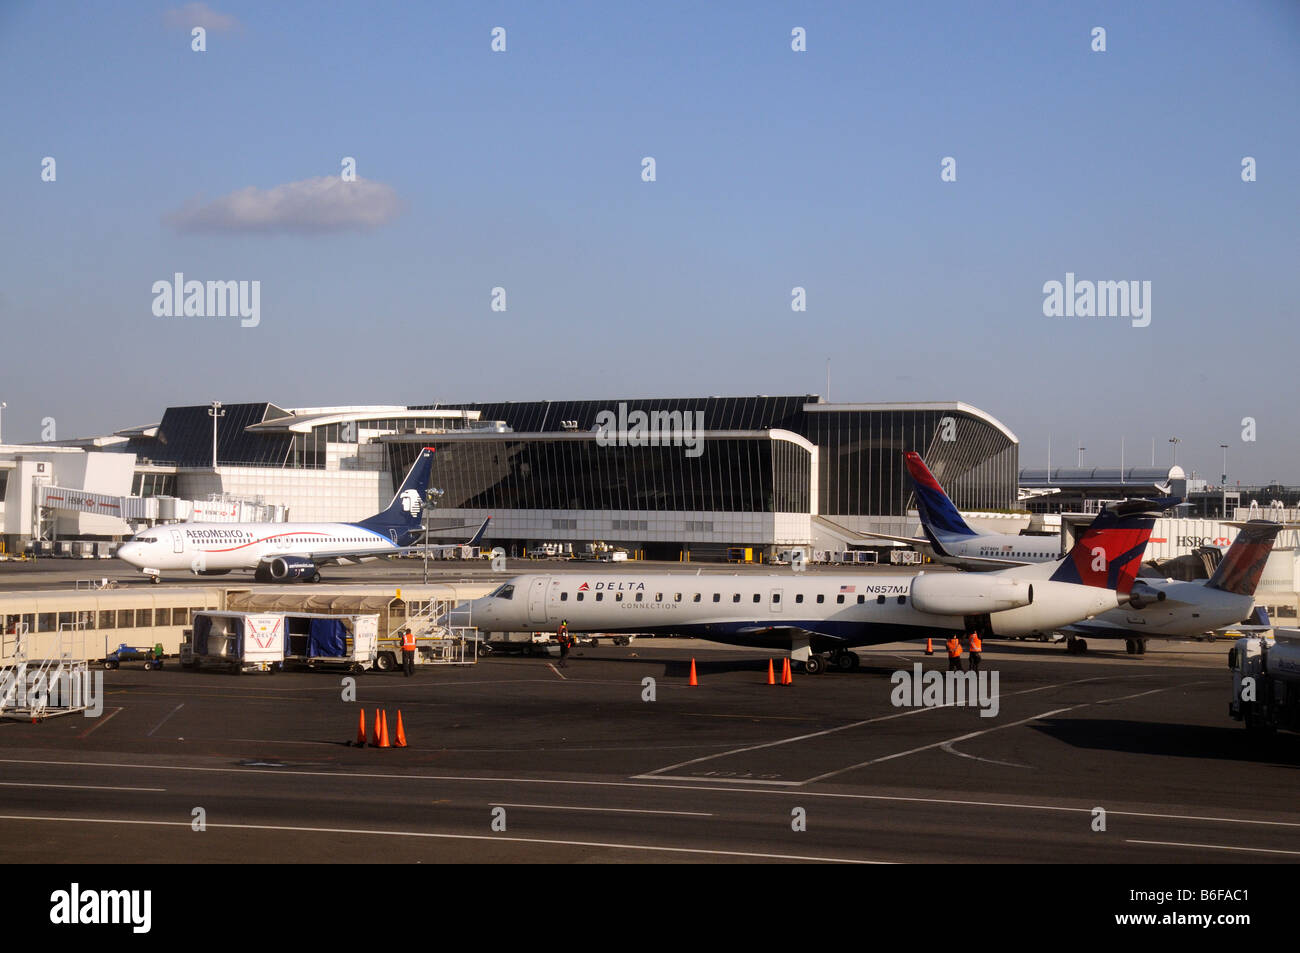 Blue apron engineering - Jfk International Airport New York Usa Terminal Building And Delta Airways Jets On The Apron